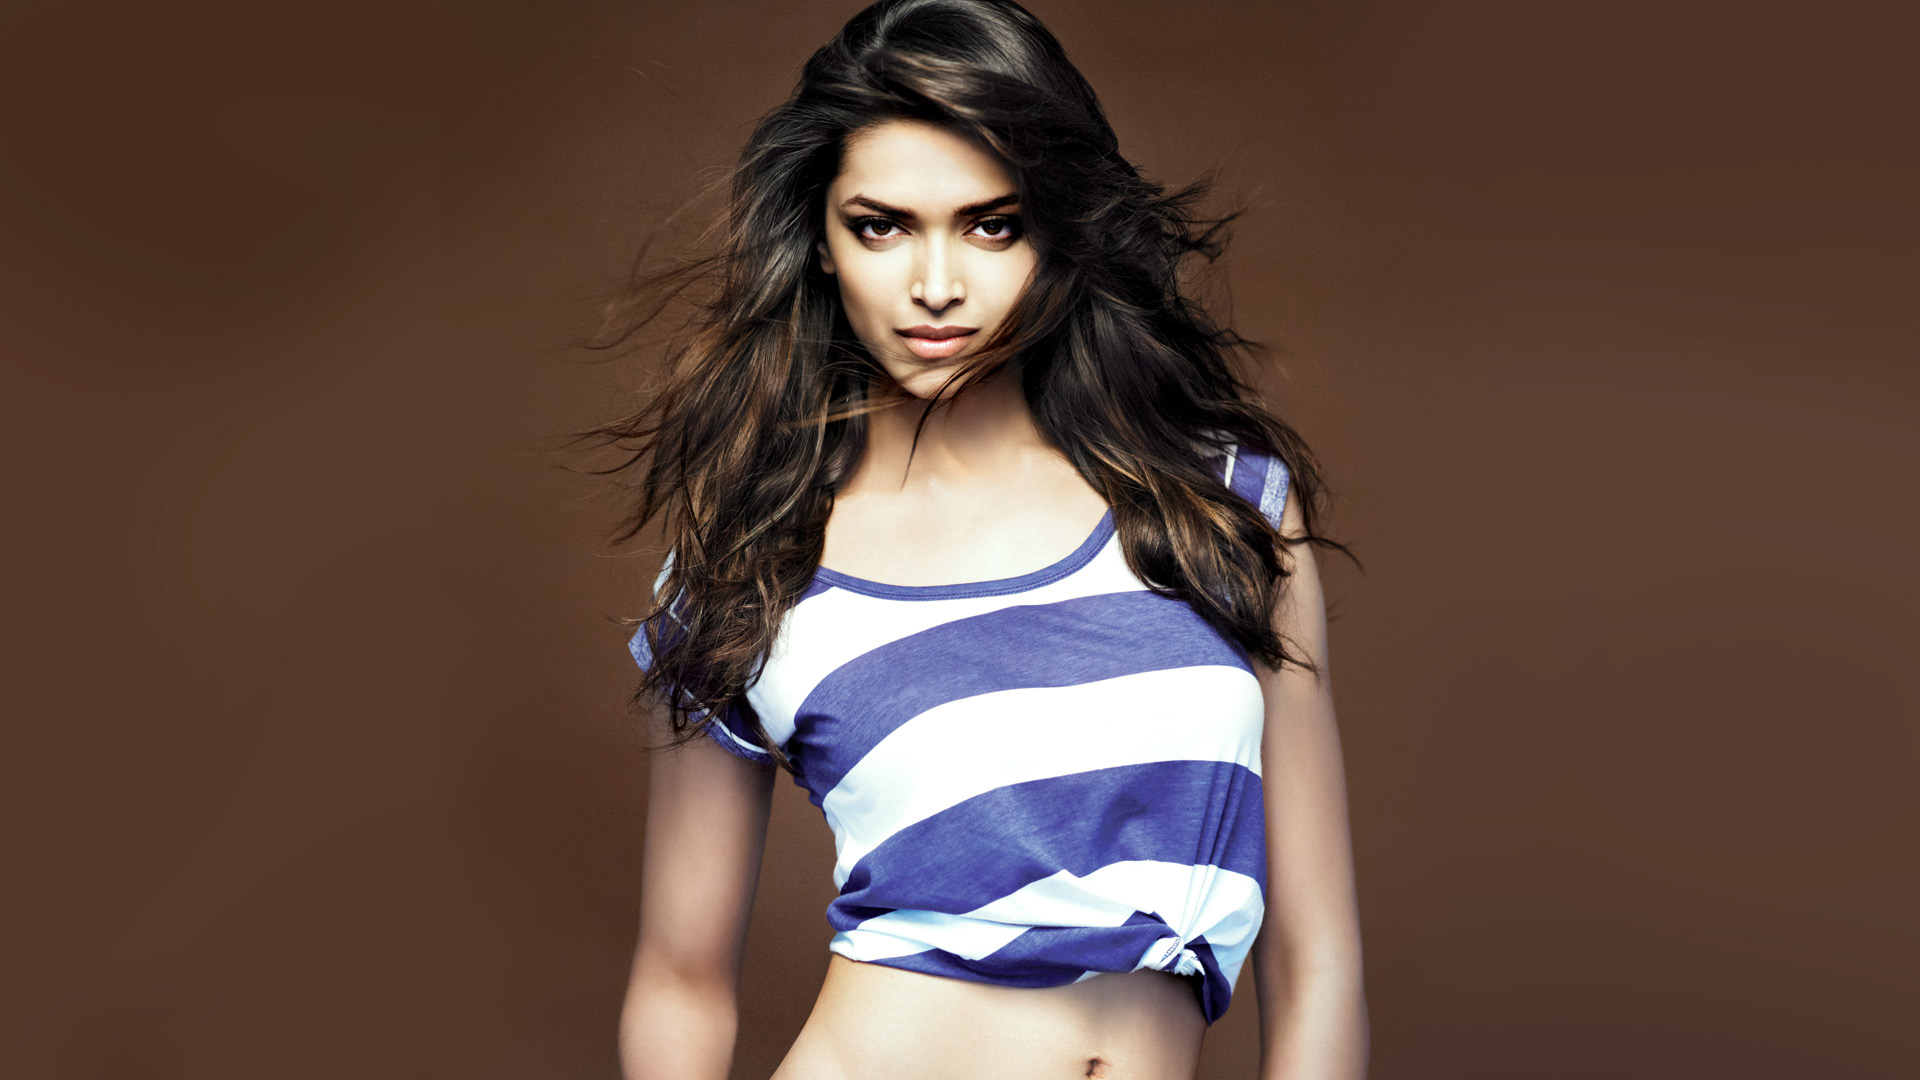 Deepika_Padukone-1920x1080-hd-Wallpaper